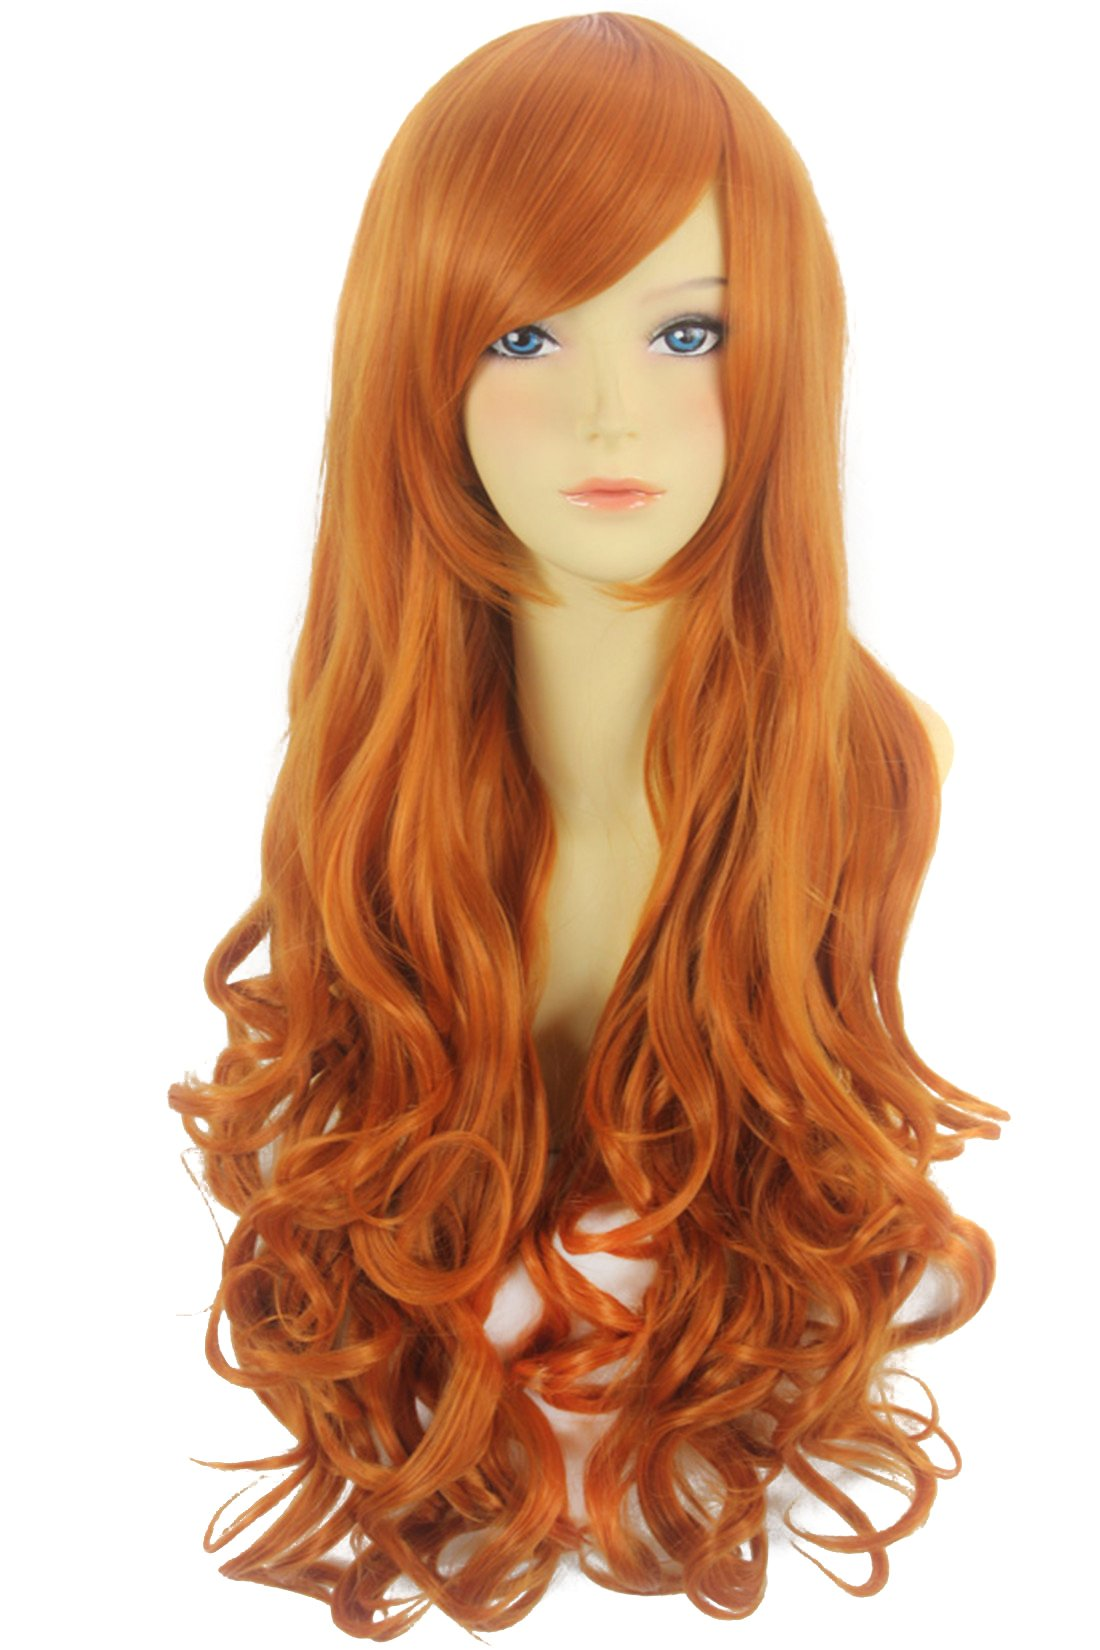 Icoser 80cm Long Curly Synthetic Hair Anime Cosplay Party Wigs for Women (Orange) by i-coser (Image #1)